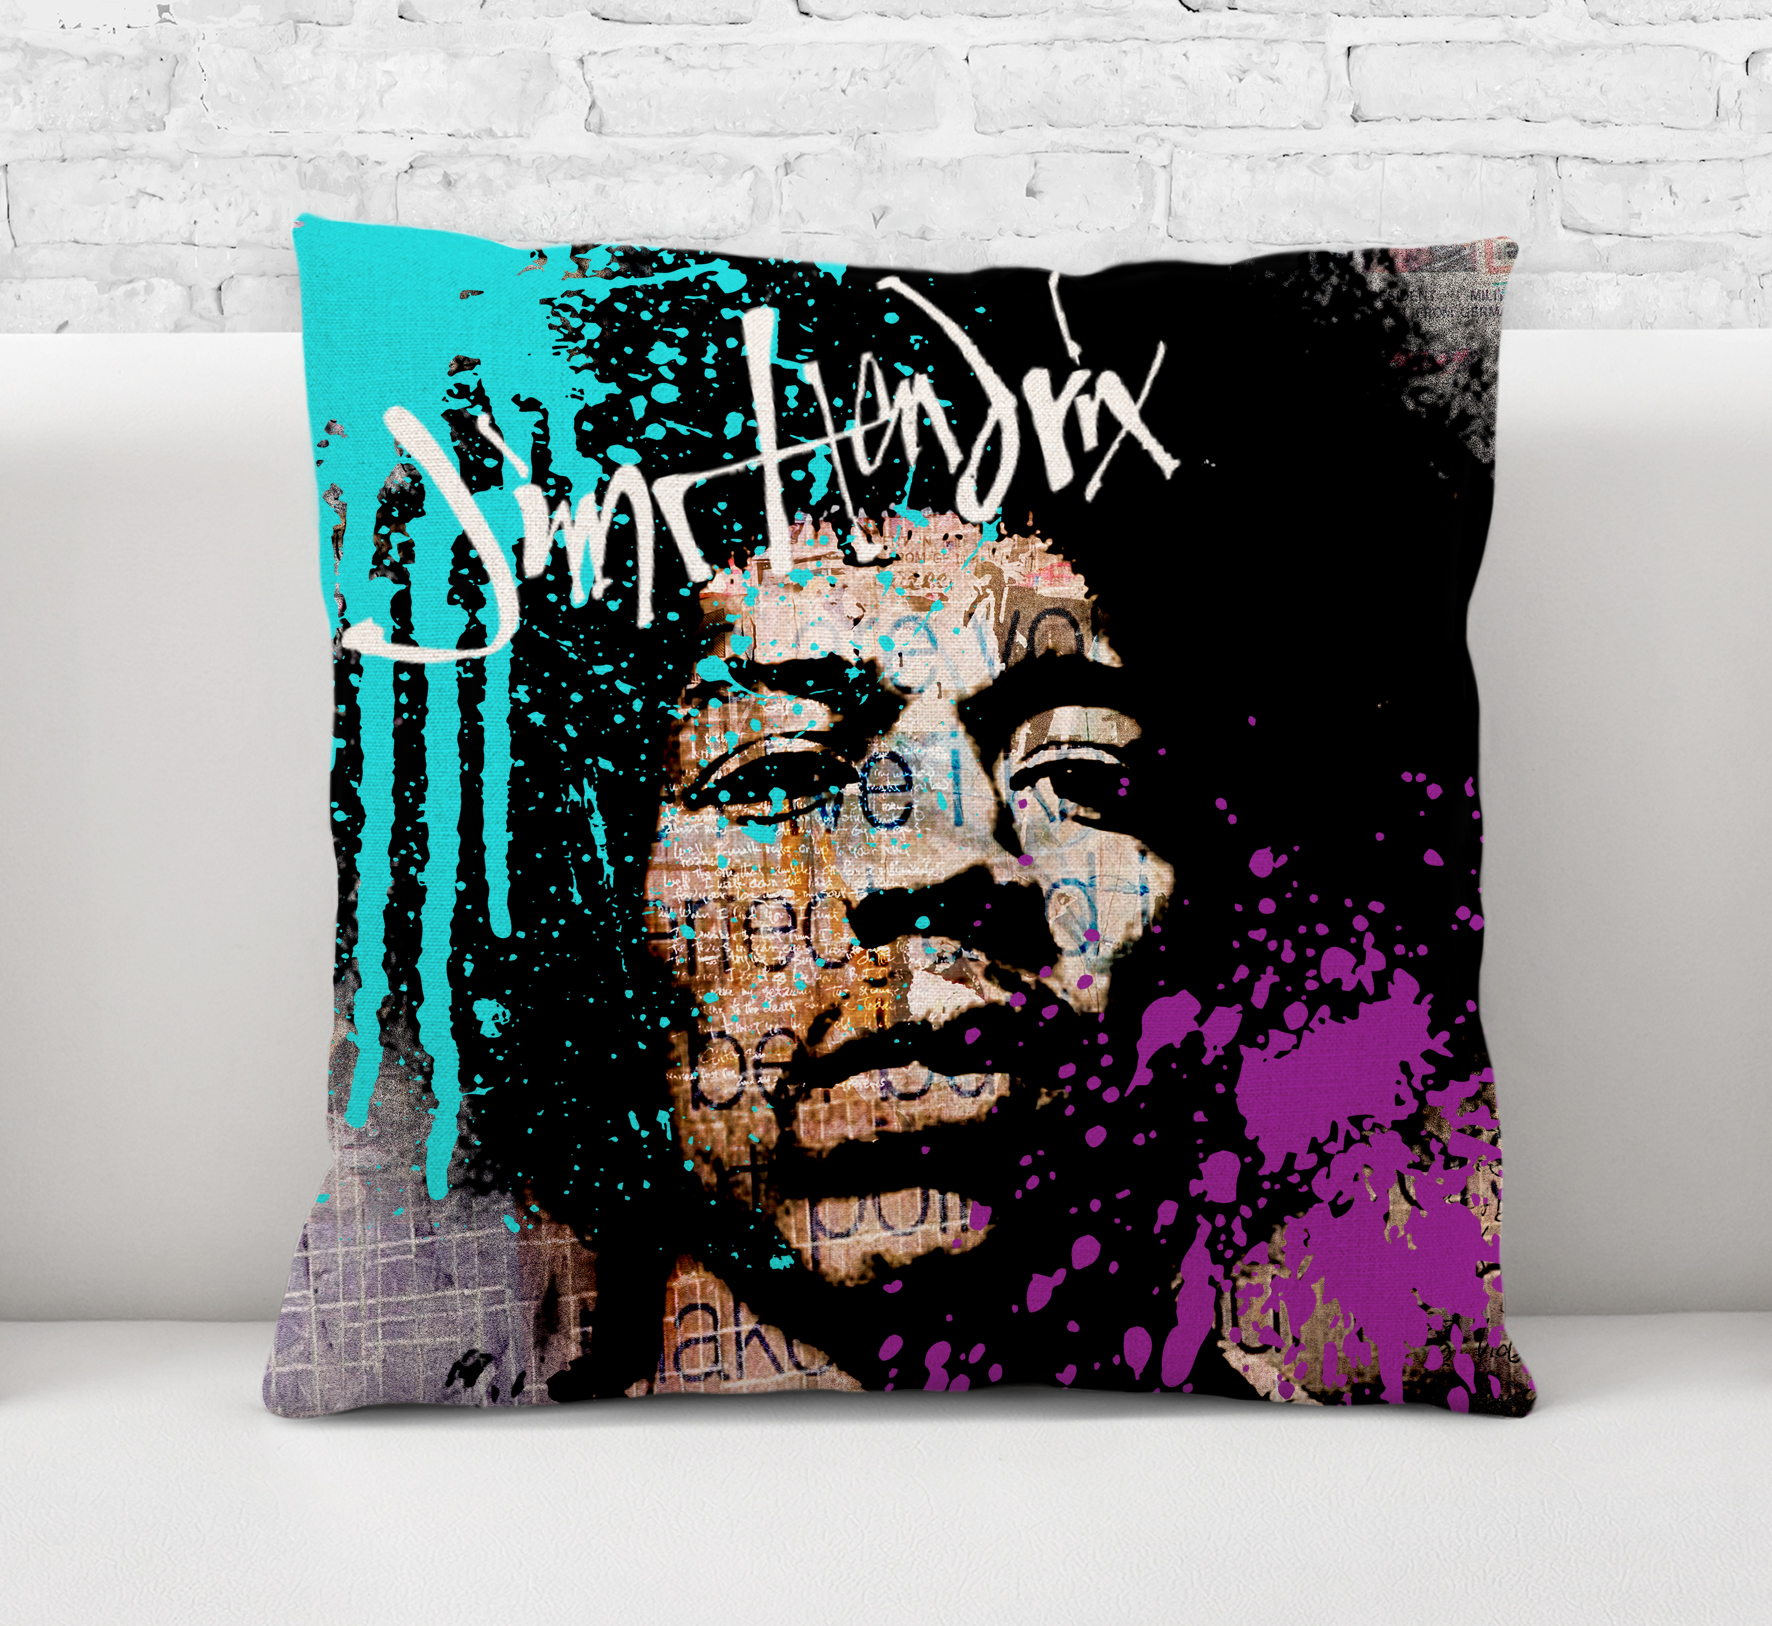 Throw Pillow CaseCushion Cover Jimi HendrixRock And RollRock MusicLegendGuitarist Painting Art E018